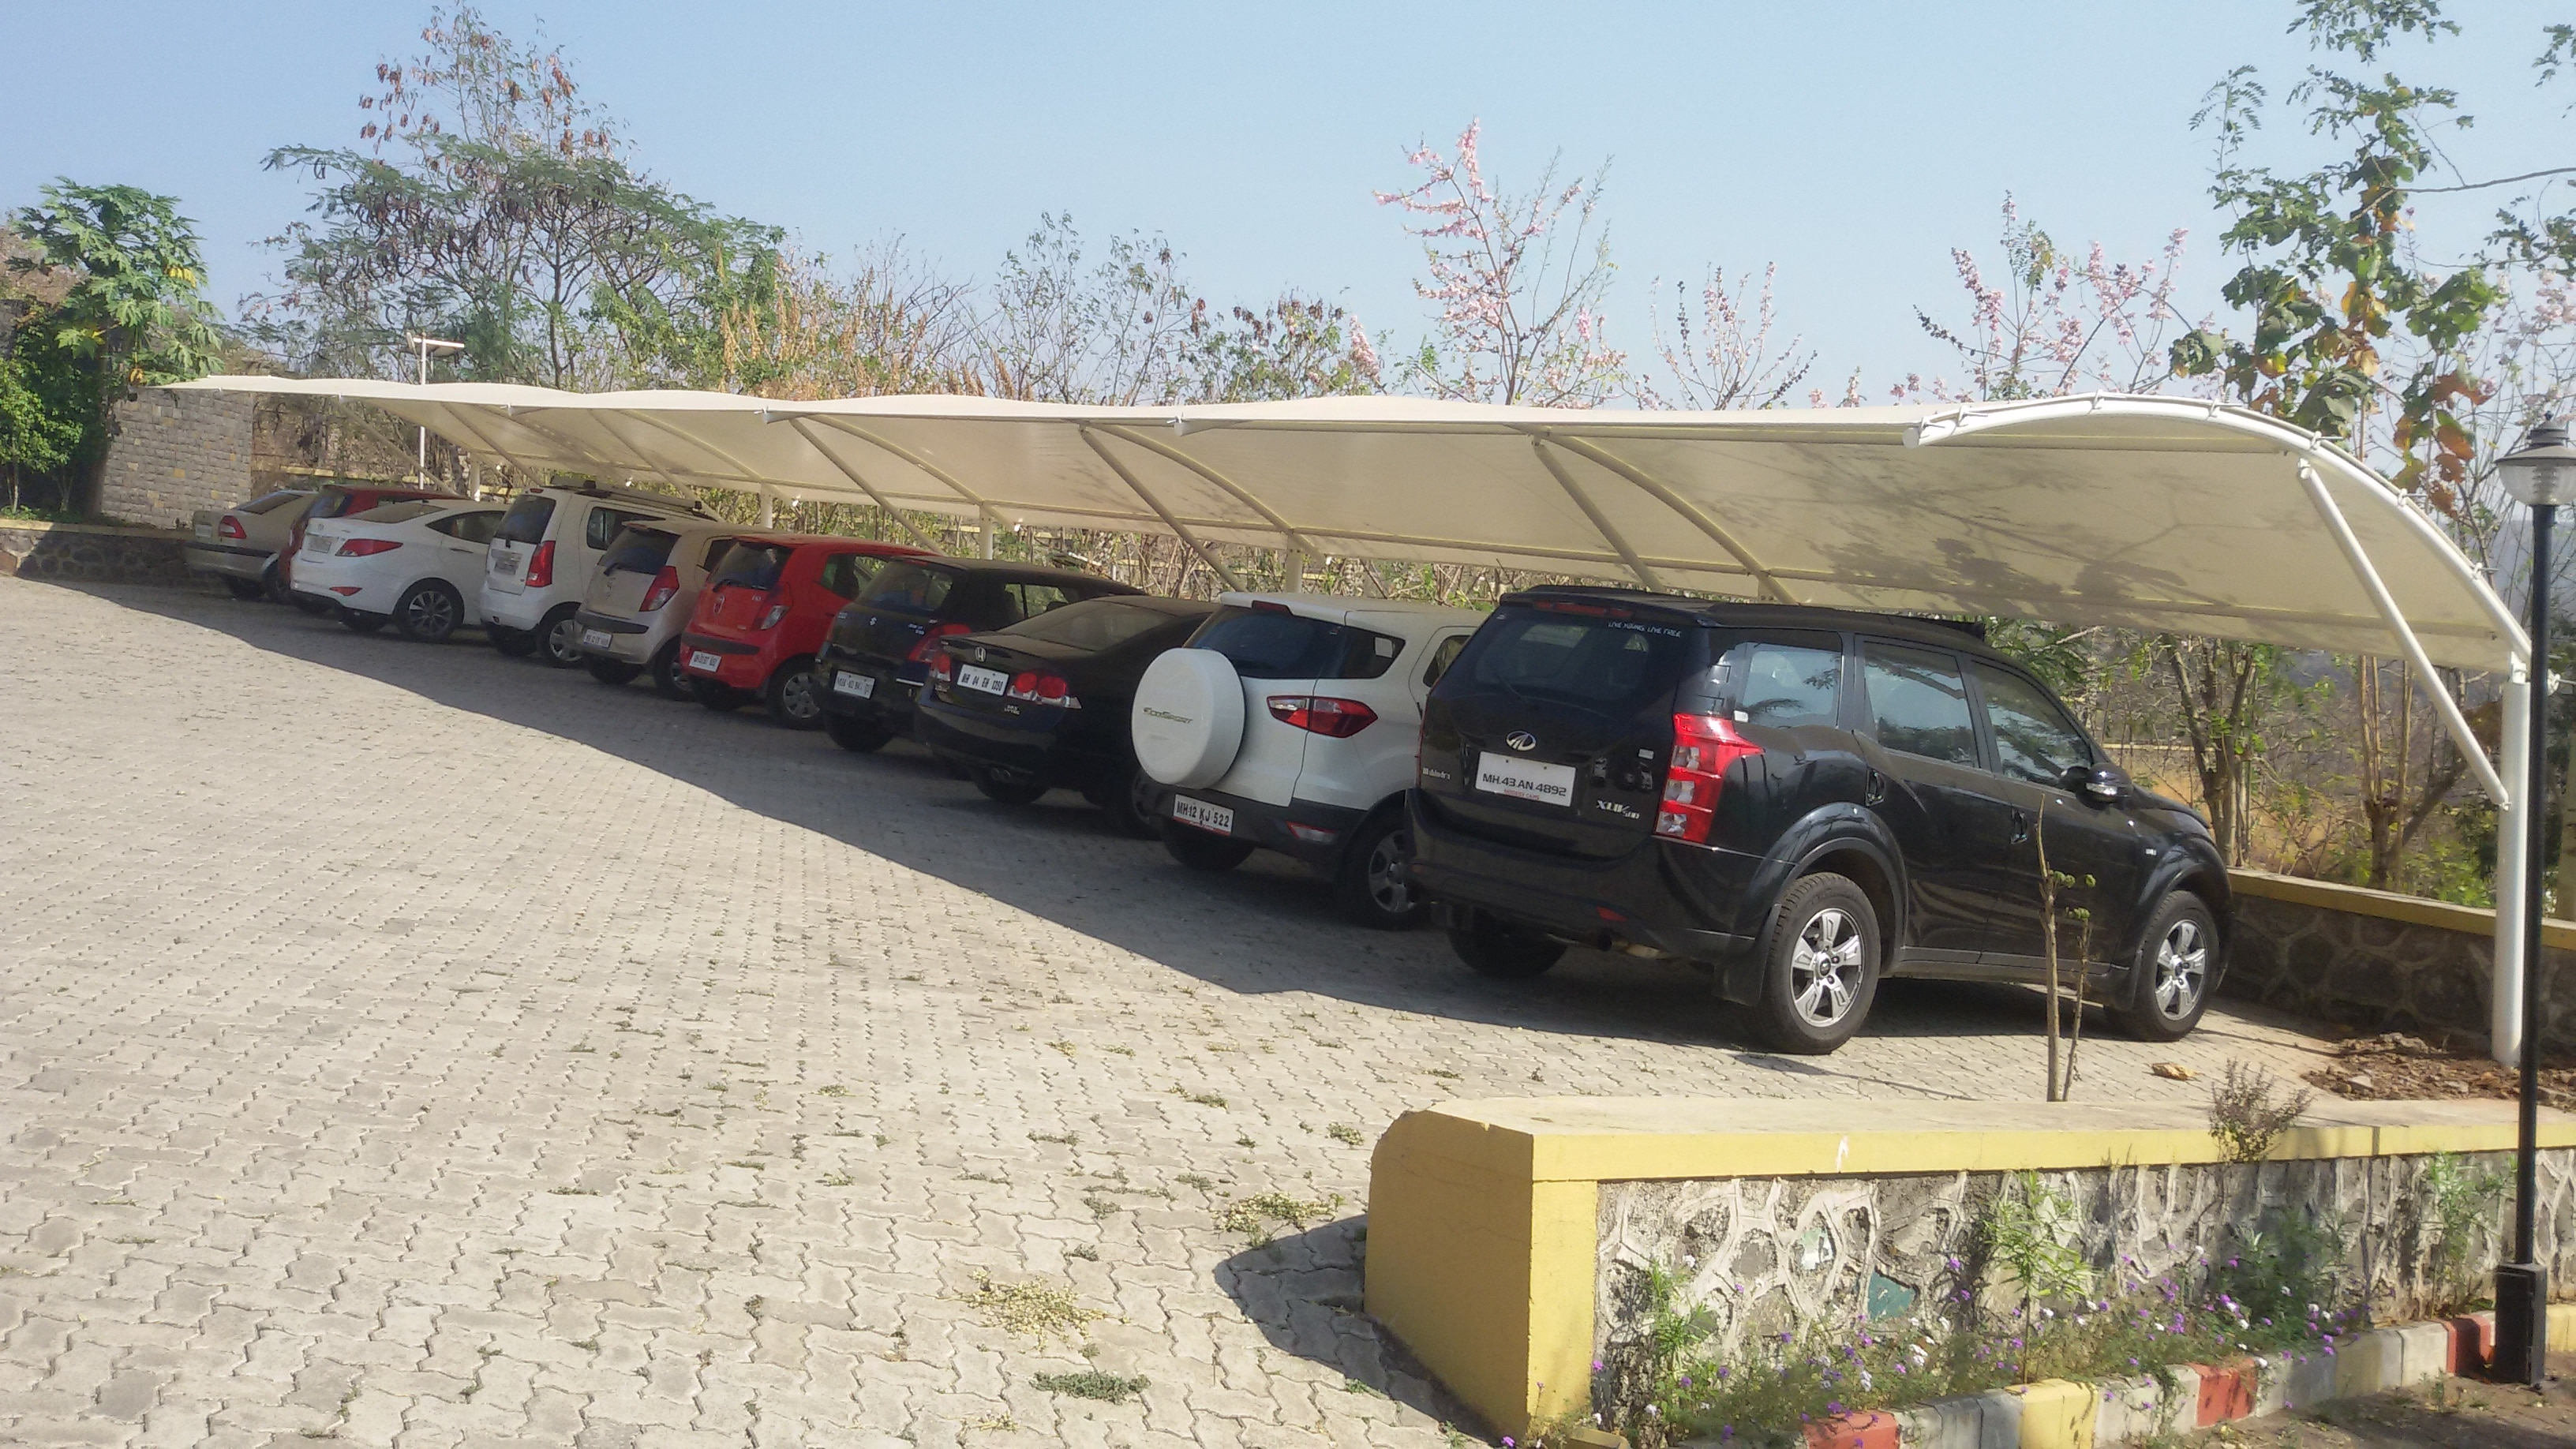 beautiful car parking shade manufacturing supply and installation just last few days we finish this projects at wildernest resort at donje pune